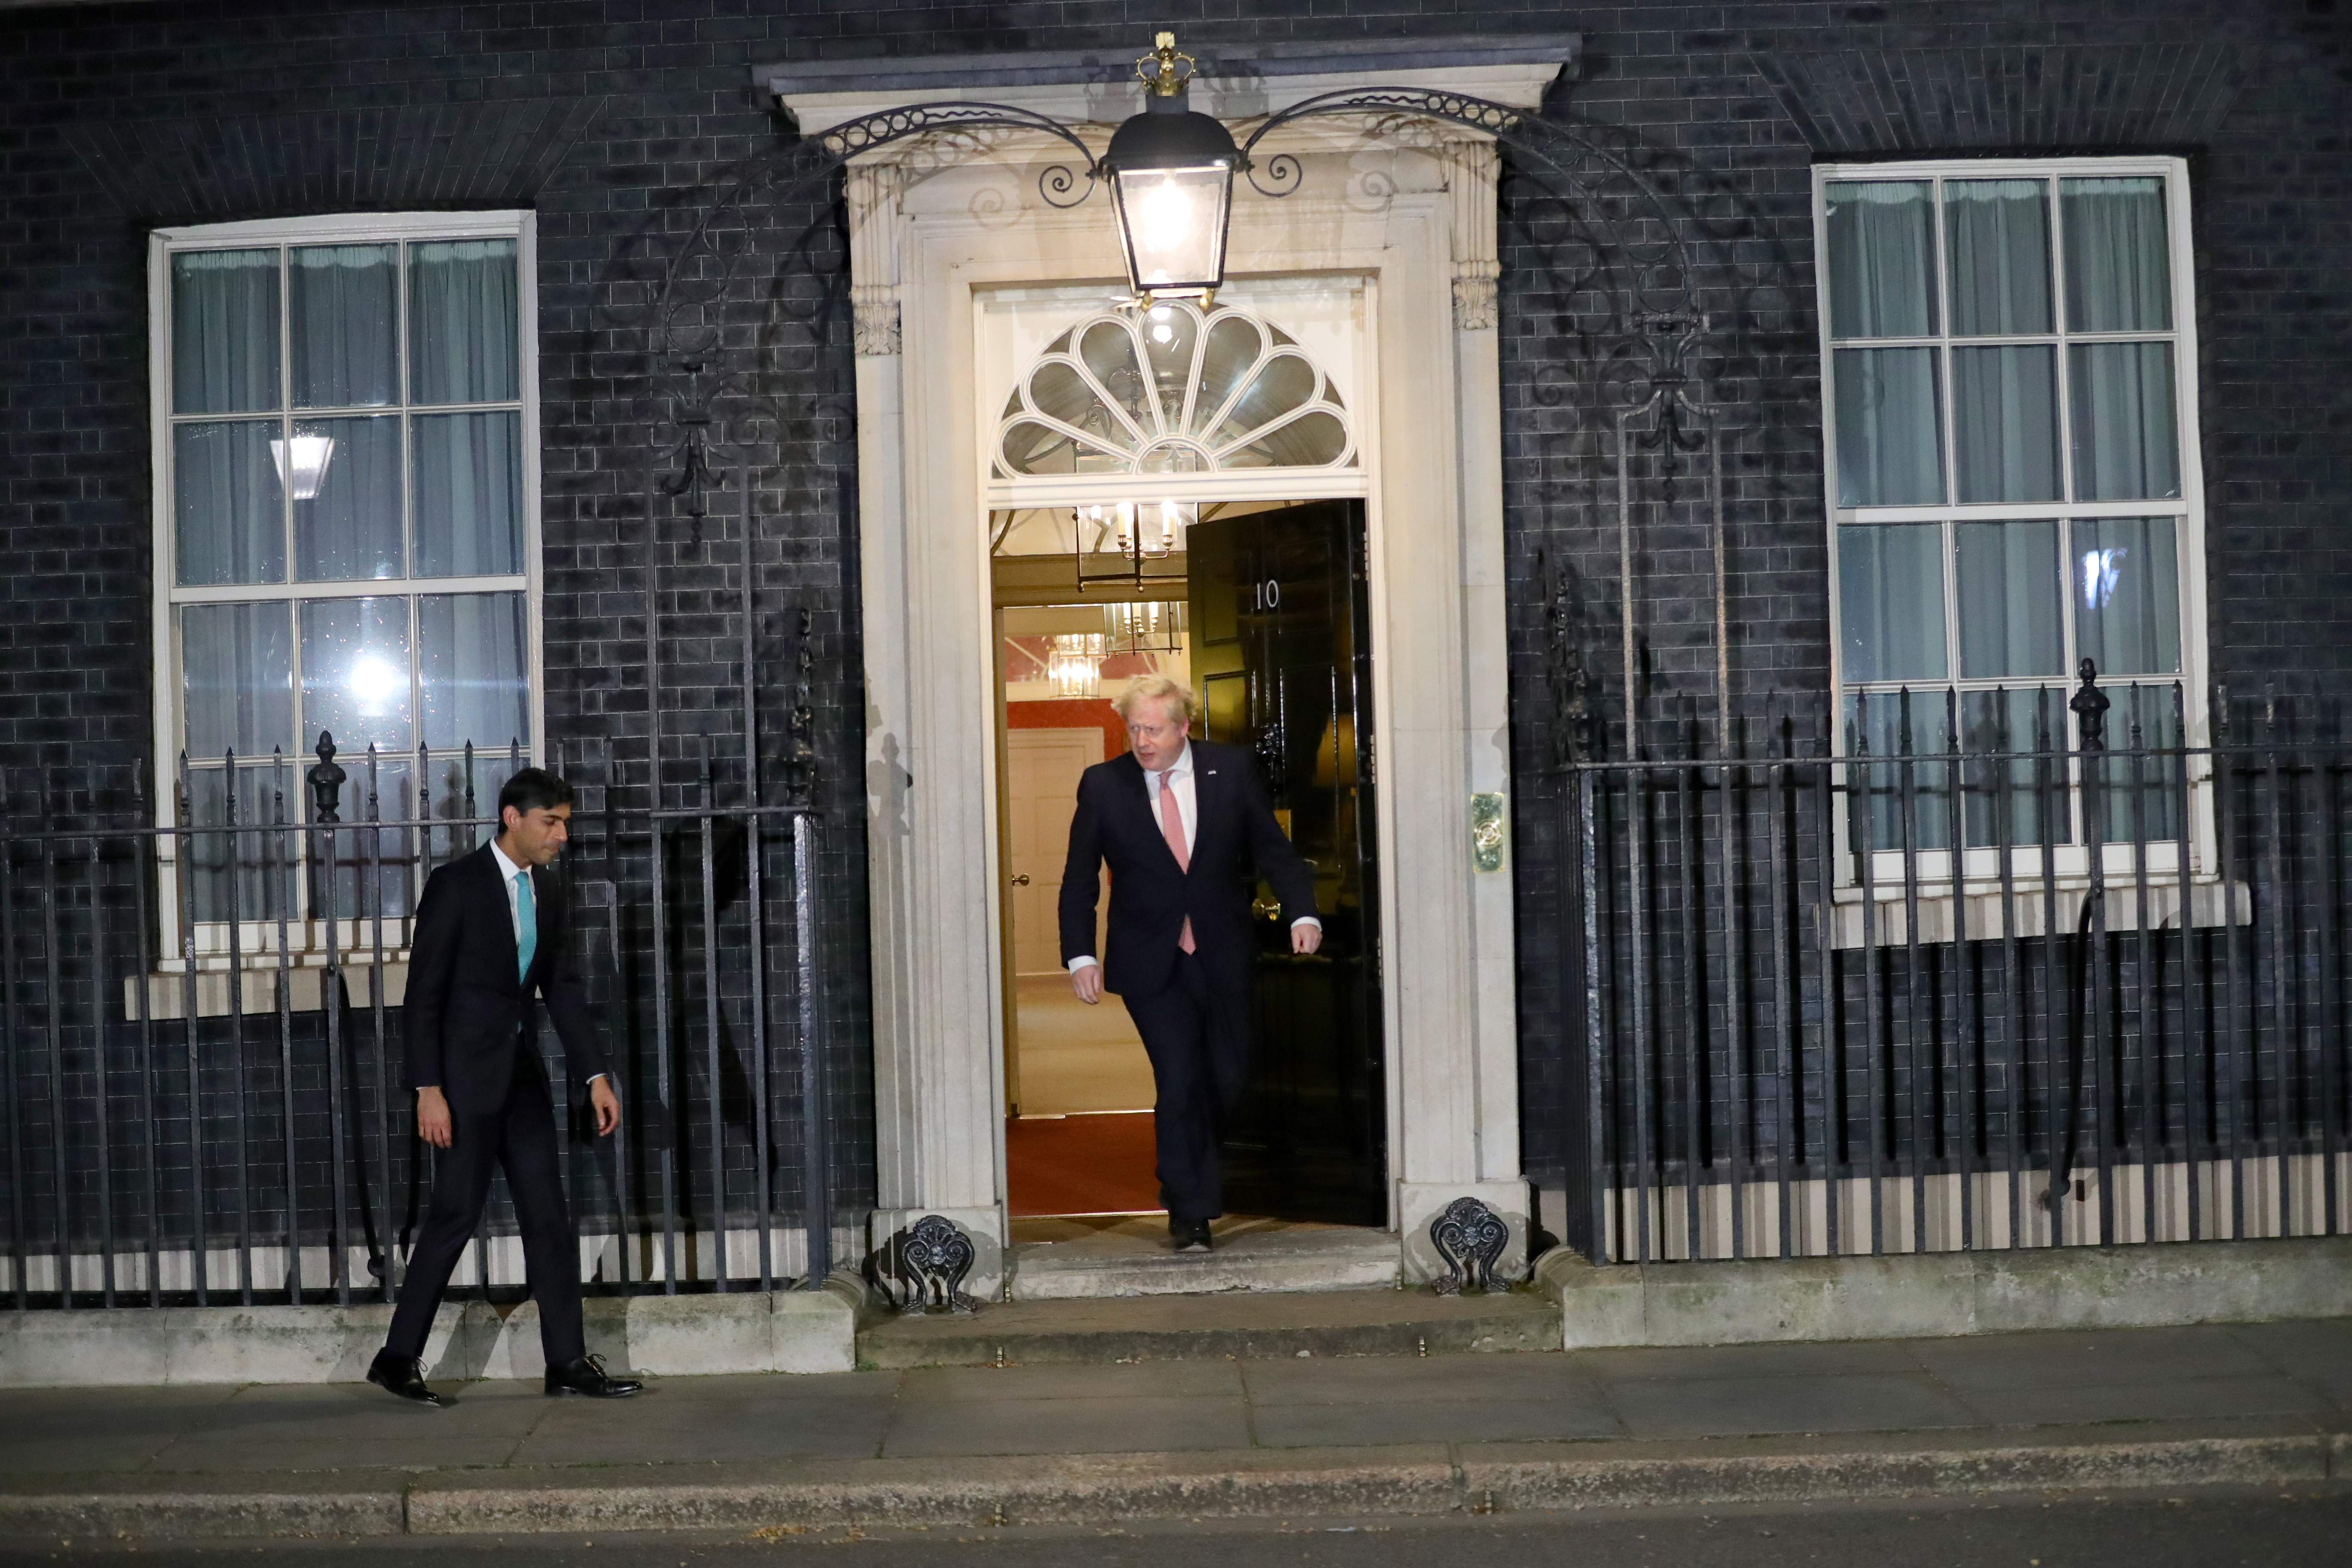 Prime Minister Boris Johnson and Chancellor Rishi Sunak outside 10 Downing Street, London, joining in with a national applause for the NHS from their doorsteps, windows and balconies to show their appreciation for all NHS workers who are helping to fight the Coronavirus.